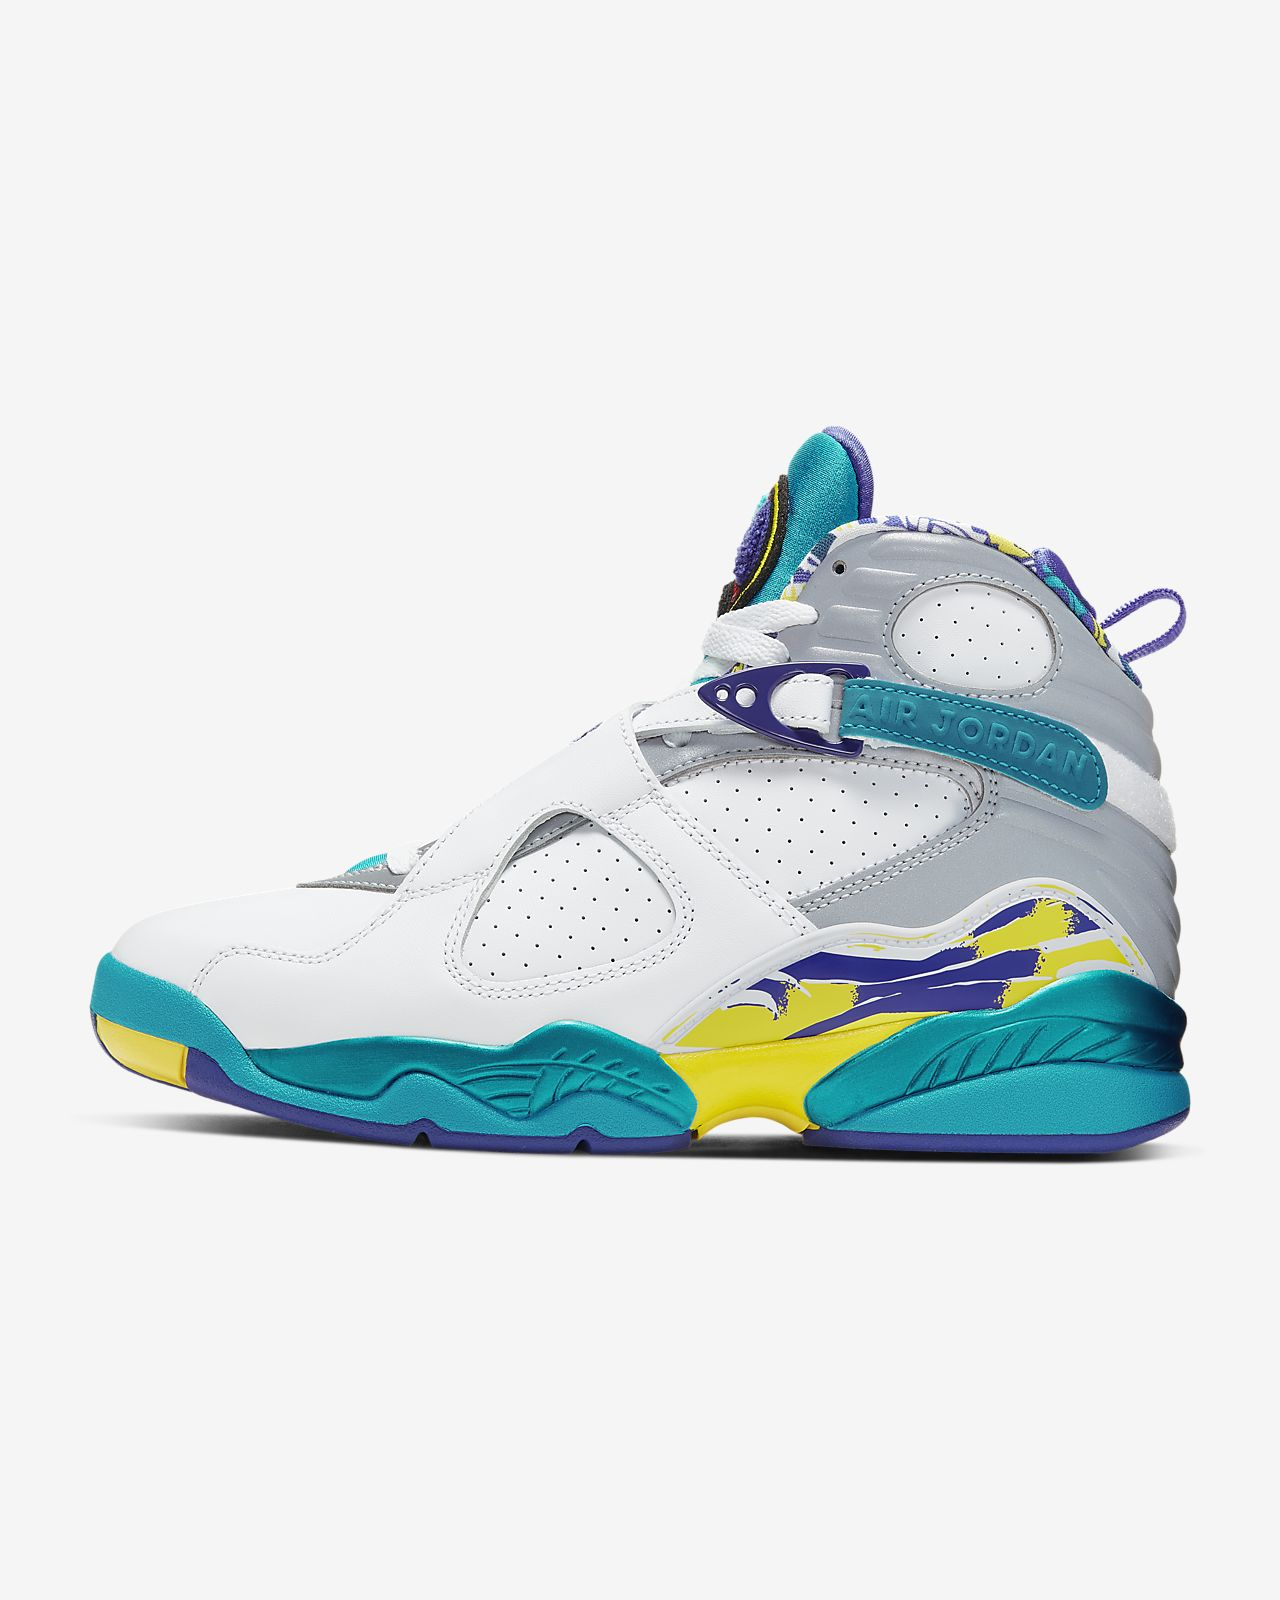 check out 87a9e b85a9 Air Jordan 8 Retro Women's Shoe